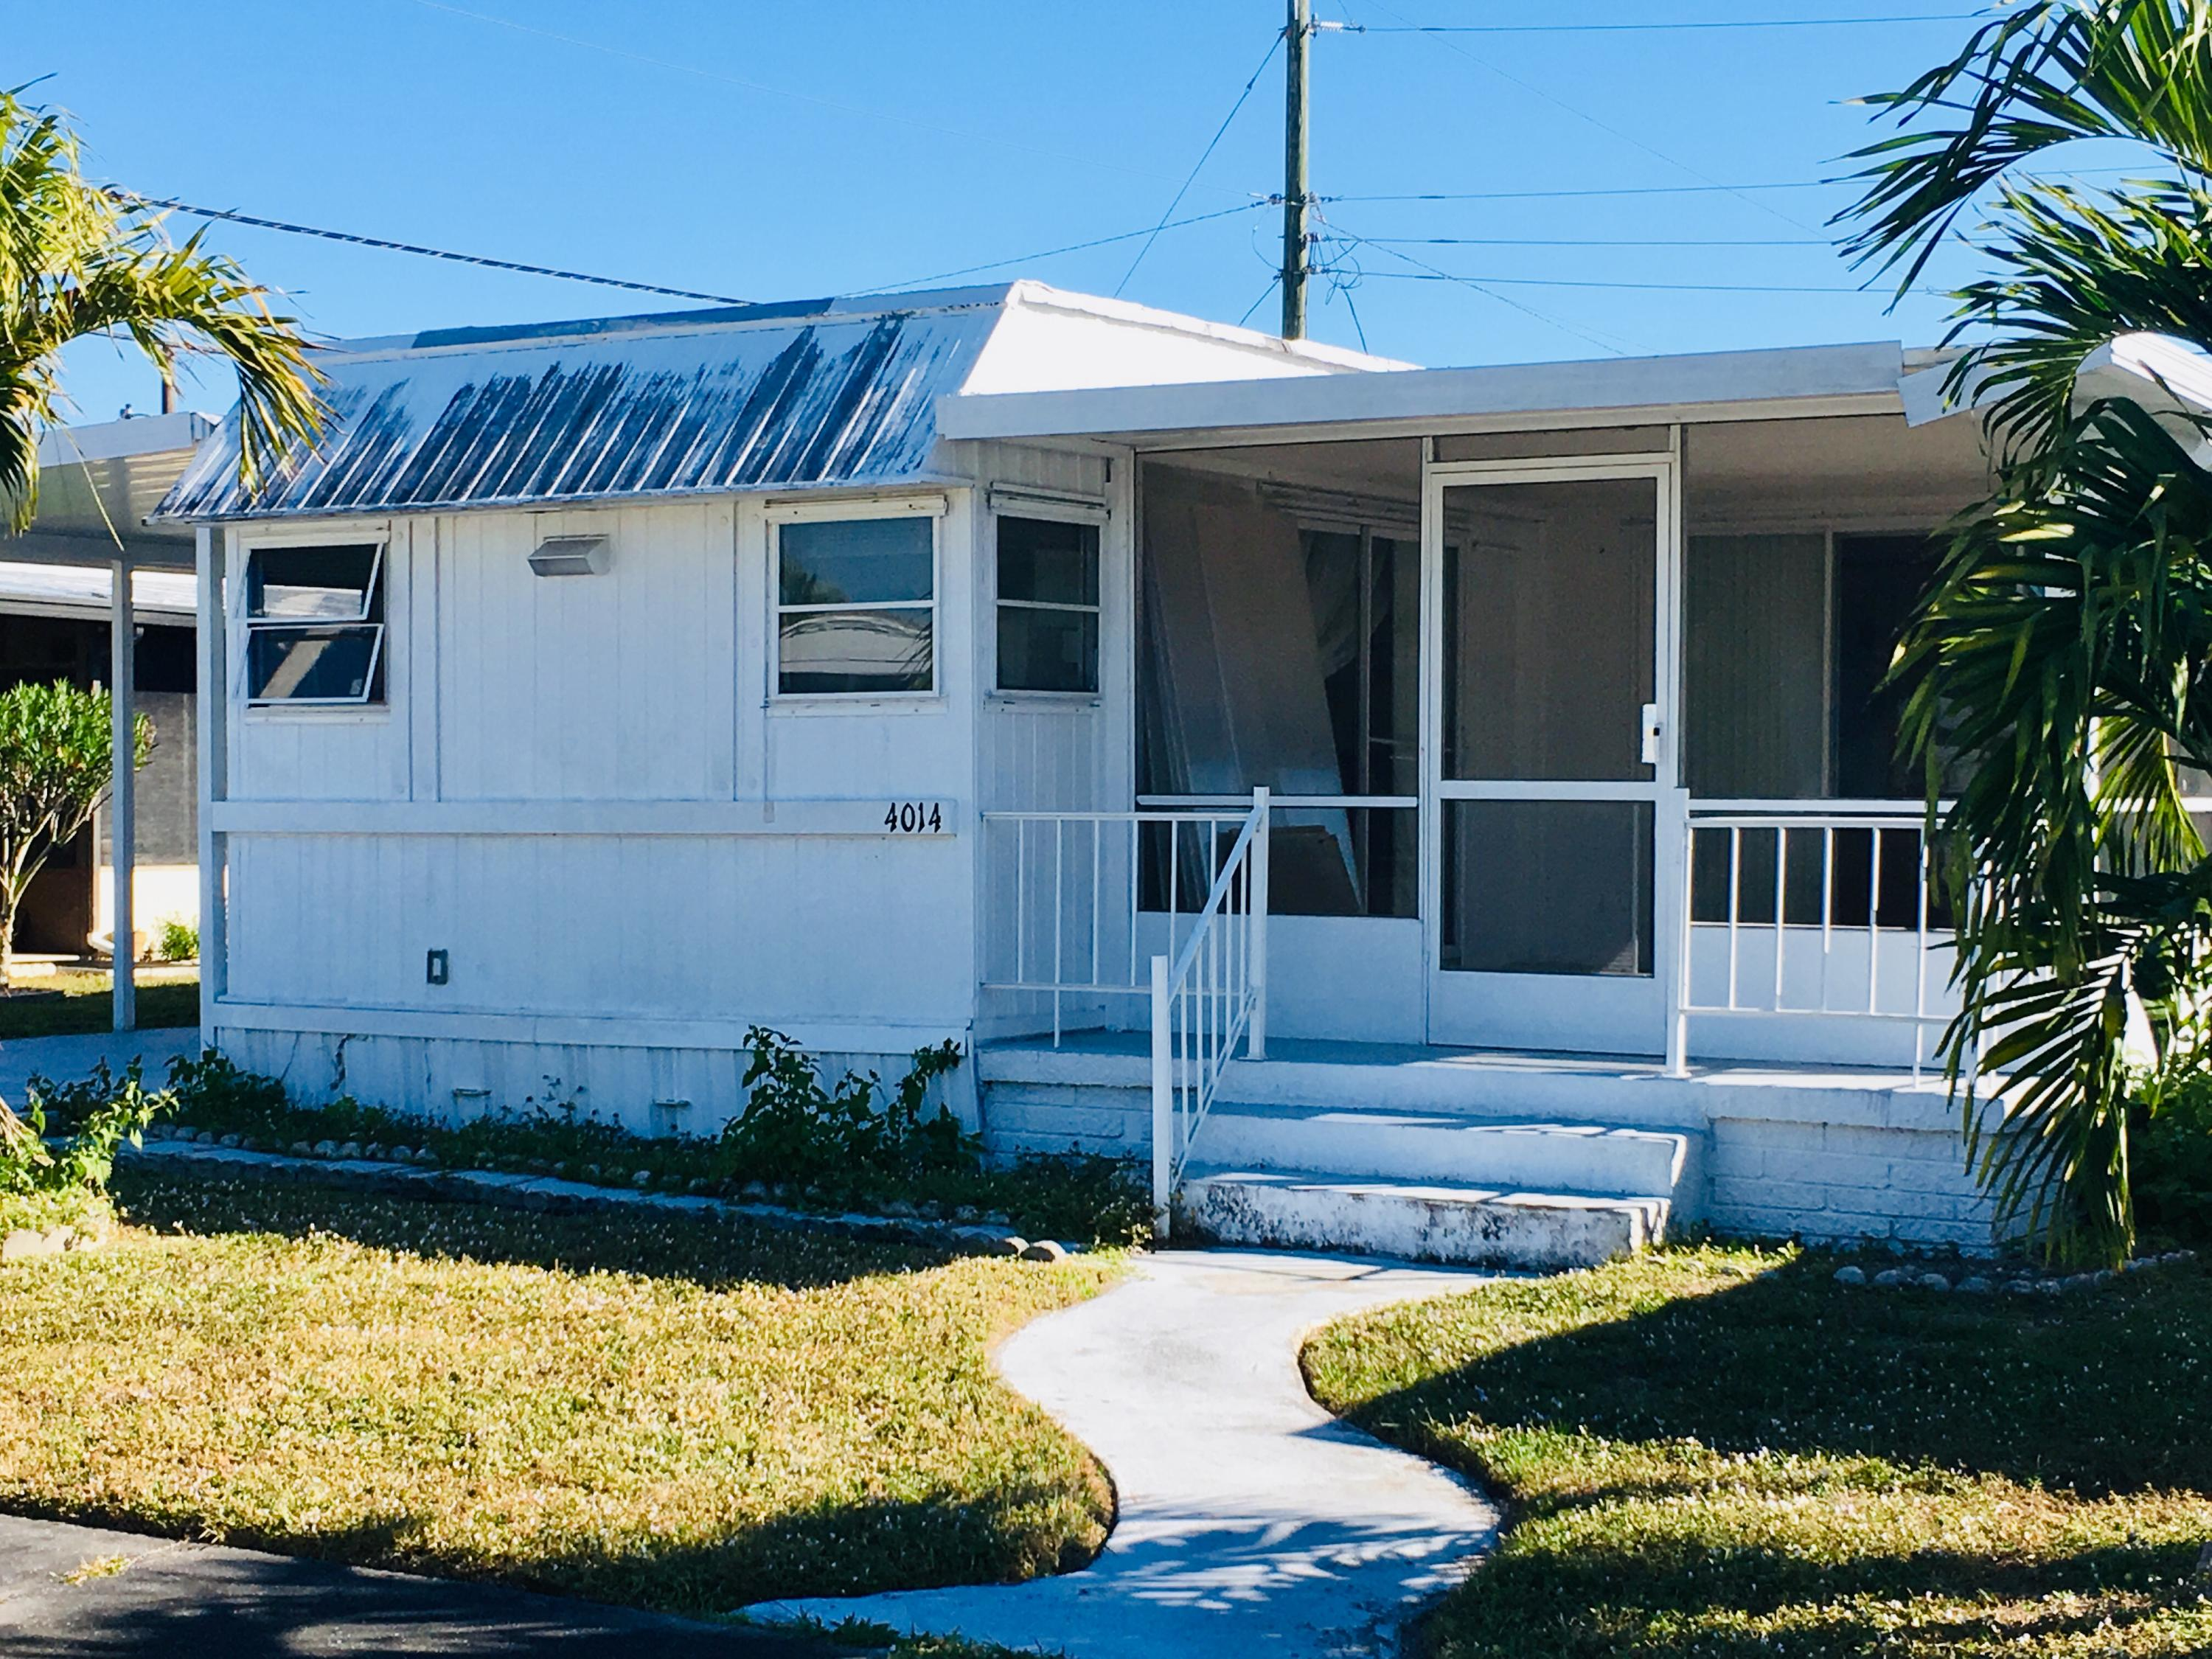 4014 Cardinal Road, Boynton Beach, Florida 33436, 1 Bedroom Bedrooms, ,2.1 BathroomsBathrooms,Mobile/manufactured,For Sale,NORTHERN PINES MOBILE HOME PARK NO 3 IN,Cardinal,1,RX-10498128